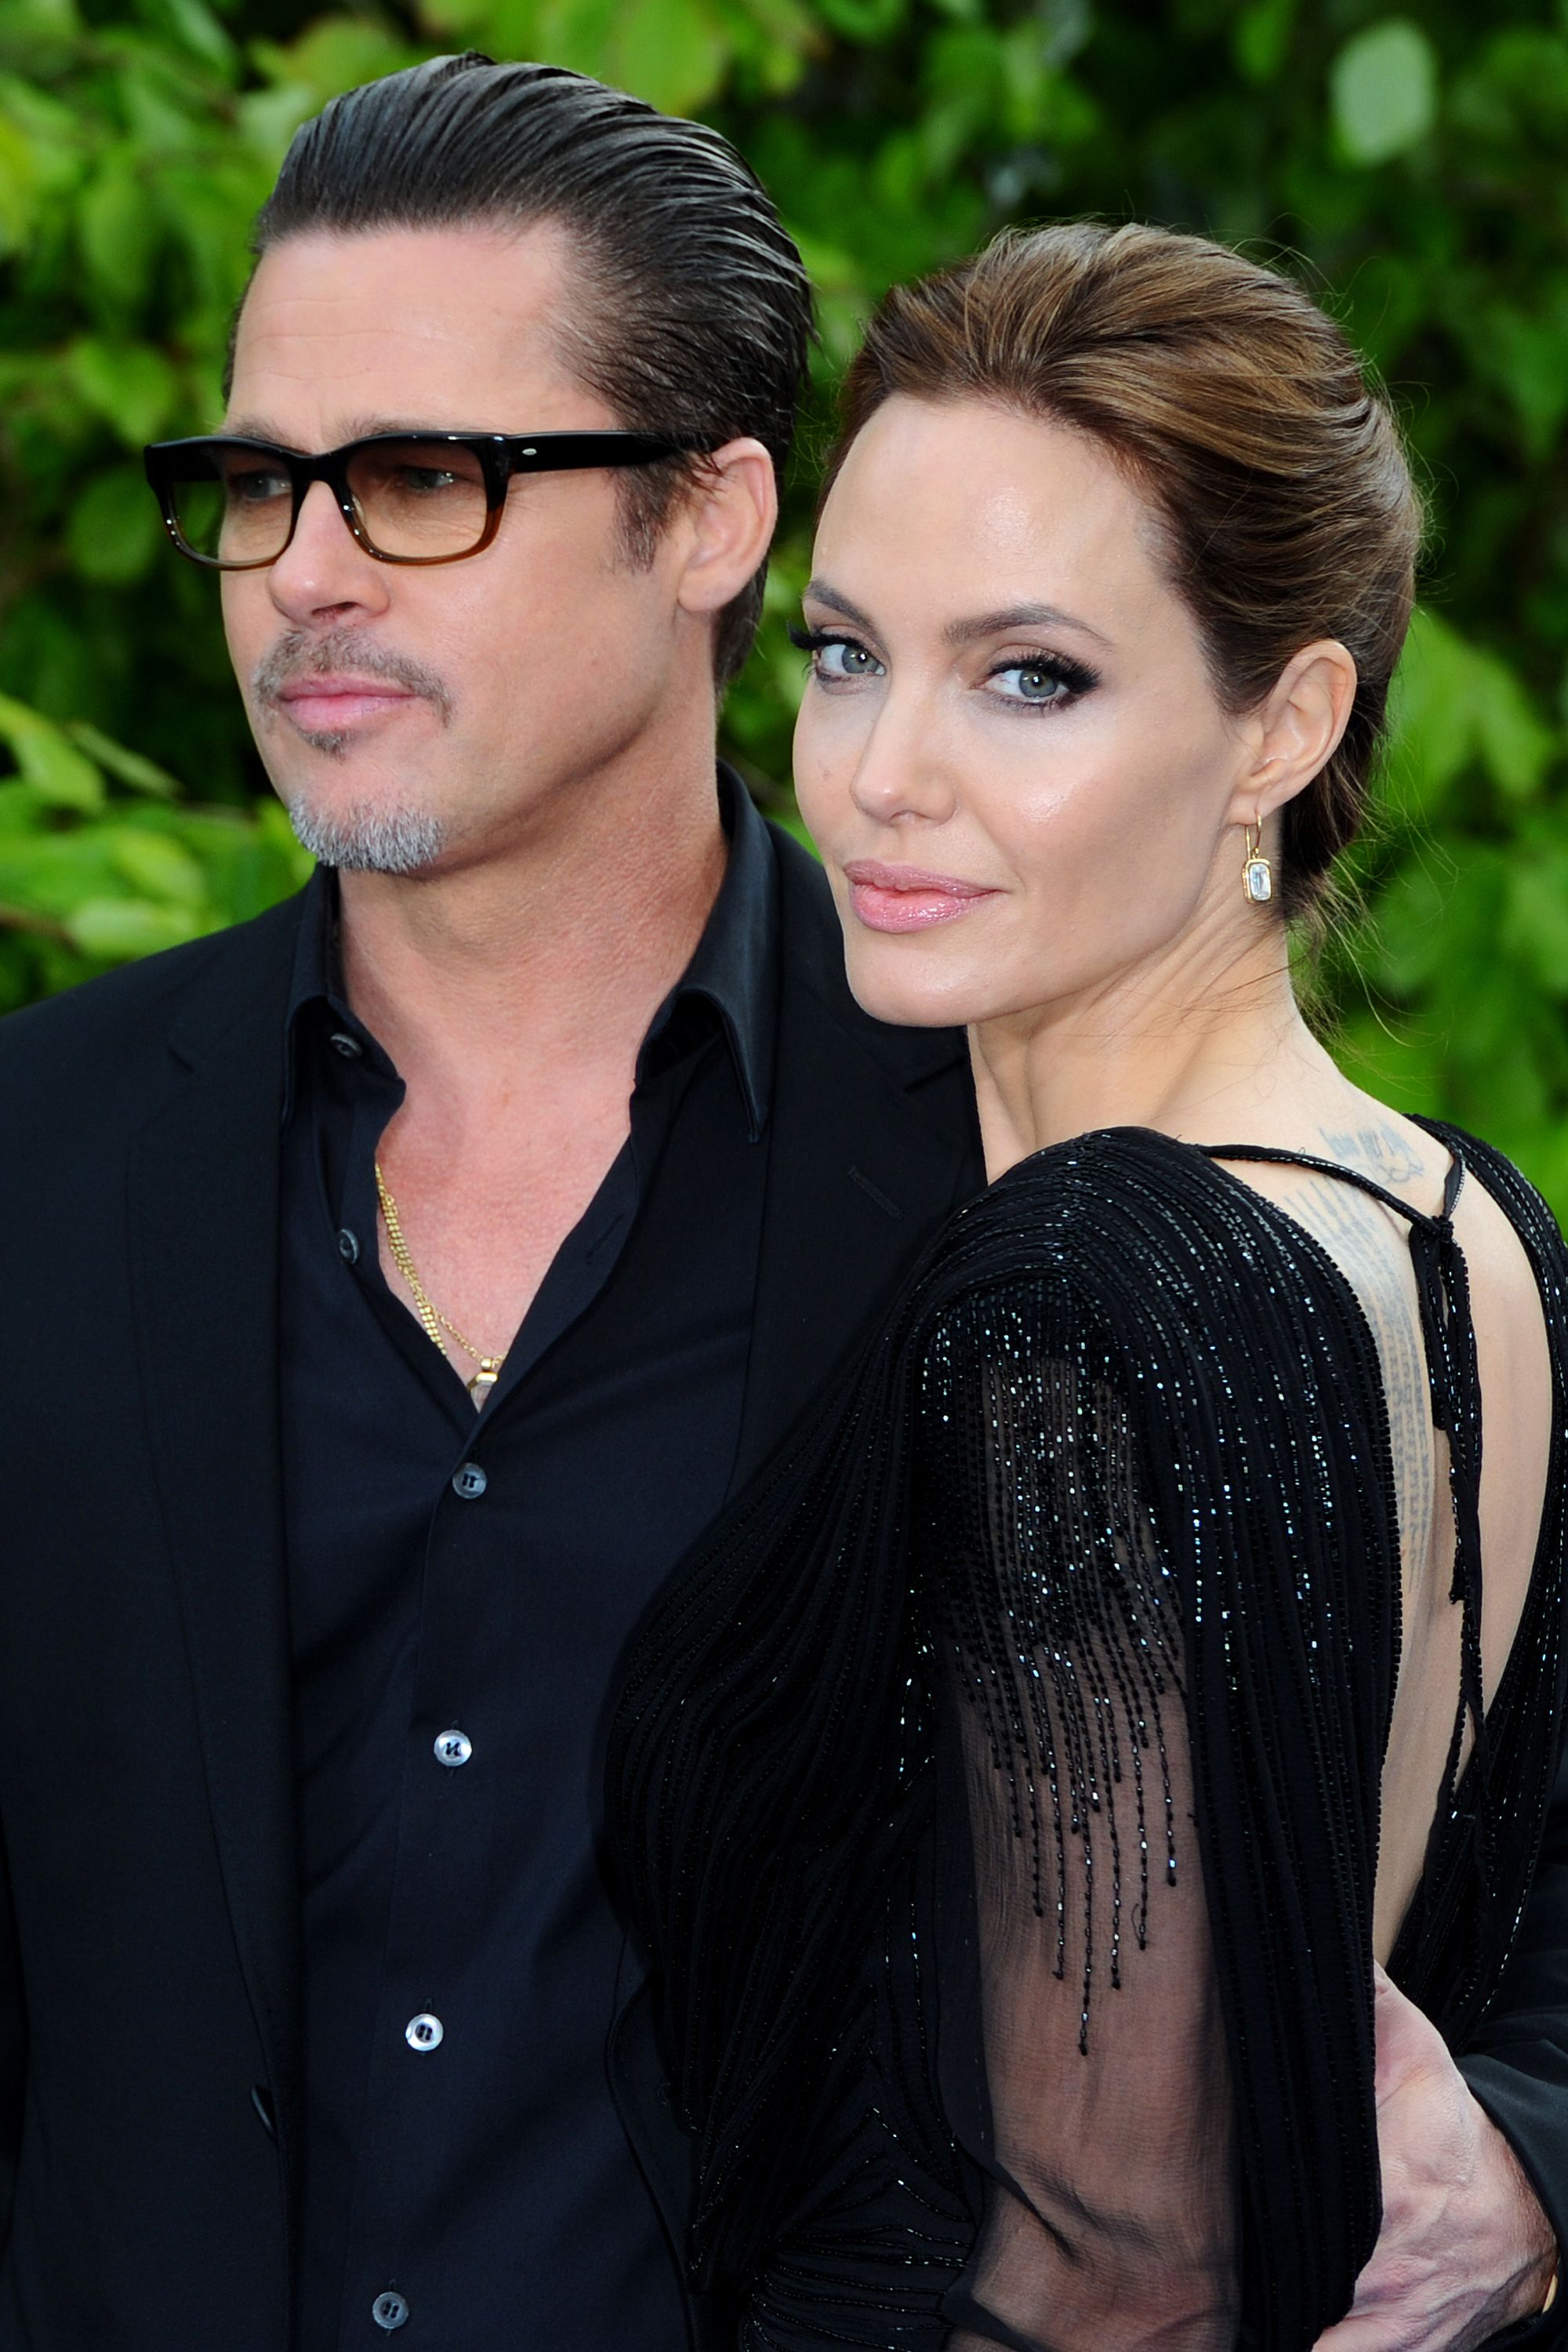 """<p>The formerHollywood coupleknown as <a href=""""http://www.redbookmag.com/love-sex/relationships/a46070/brangelina-divorce-strategy/"""" target=""""_blank"""" data-tracking-id=""""recirc-text-link"""">Brangelina</a> adopted an anything-goes attitude when it came to their kids' questions about life. """"We have a policy in our family, no secrets,""""Pitt, 49, told<a href=""""http://m.extratv.com/entry/view/id/173208#entry/view/id/173208"""" target=""""_blank""""><em data-redactor-tag=""""em"""">Extra</em></a>. """"Imean, there's an age of understanding, so you've got to present it in a way that is age-appropriate, but we know our children very well [...]We want everything to be on the table and any questions they have, for them to ask<span class=""""redactor-invisible-space"""" data-verified=""""redactor"""" data-redactor-tag=""""span"""" data-redactor-class=""""redactor-invisible-space"""">.""""</span></p><p><span class=""""redactor-invisible-space"""" data-verified=""""redactor"""" data-redactor-tag=""""span"""" data-redactor-class=""""redactor-invisible-space"""">While, in theory, this sounds like it could make sense, it's also important to remember that several of the <a href=""""http://www.redbookmag.com/life/mom-kids/a42081/angelina-jolie-kids-kung-fu-panda-three/"""" target=""""_blank"""" data-tracking-id=""""recirc-text-link"""">Jolie-Pitt kids</a> are under 12 —<em data-verified=""""redactor"""" data-redactor-tag=""""em"""">way</em><span class=""""redactor-invisible-space"""" data-verified=""""redactor"""" data-redactor-tag=""""span"""" data-redactor-class=""""redactor-invisible-space""""> too young to be overburdened with adult worries. That's why <a href=""""http://www.redbookmag.com/life/mom-kids/advice/a4719/lying-to-kids/"""" target=""""_blank"""" data-tracking-id=""""recirc-text-link"""">parenting """"white lies""""</a> exist, duh.</span></span><span class=""""redactor-invisible-space"""" data-verified=""""redactor"""" data-redactor-tag=""""span"""" data-redactor-class=""""redactor-invisible-space""""></span></p><p><strong data-redactor-tag=""""strong"""" data-verified=""""redactor"""">RELATED:</strong><a href=""""http://www.redbookmag.com/life/mom-kids/g4247"""